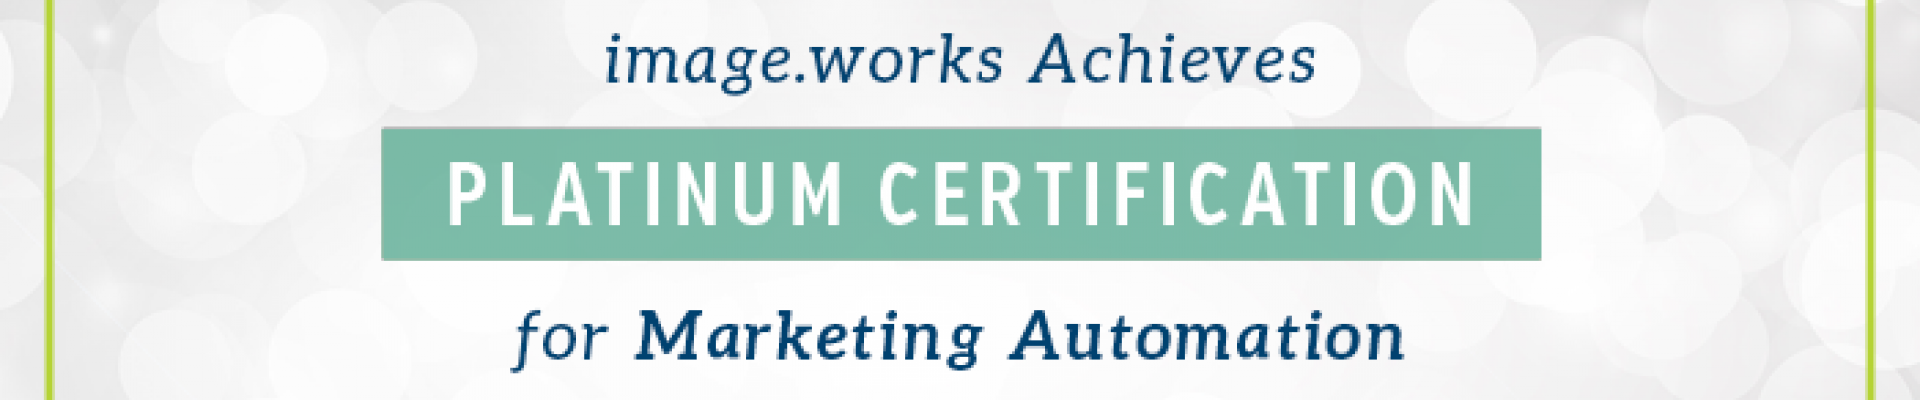 image.works Achieves Platinum Certification for Marketing Automation